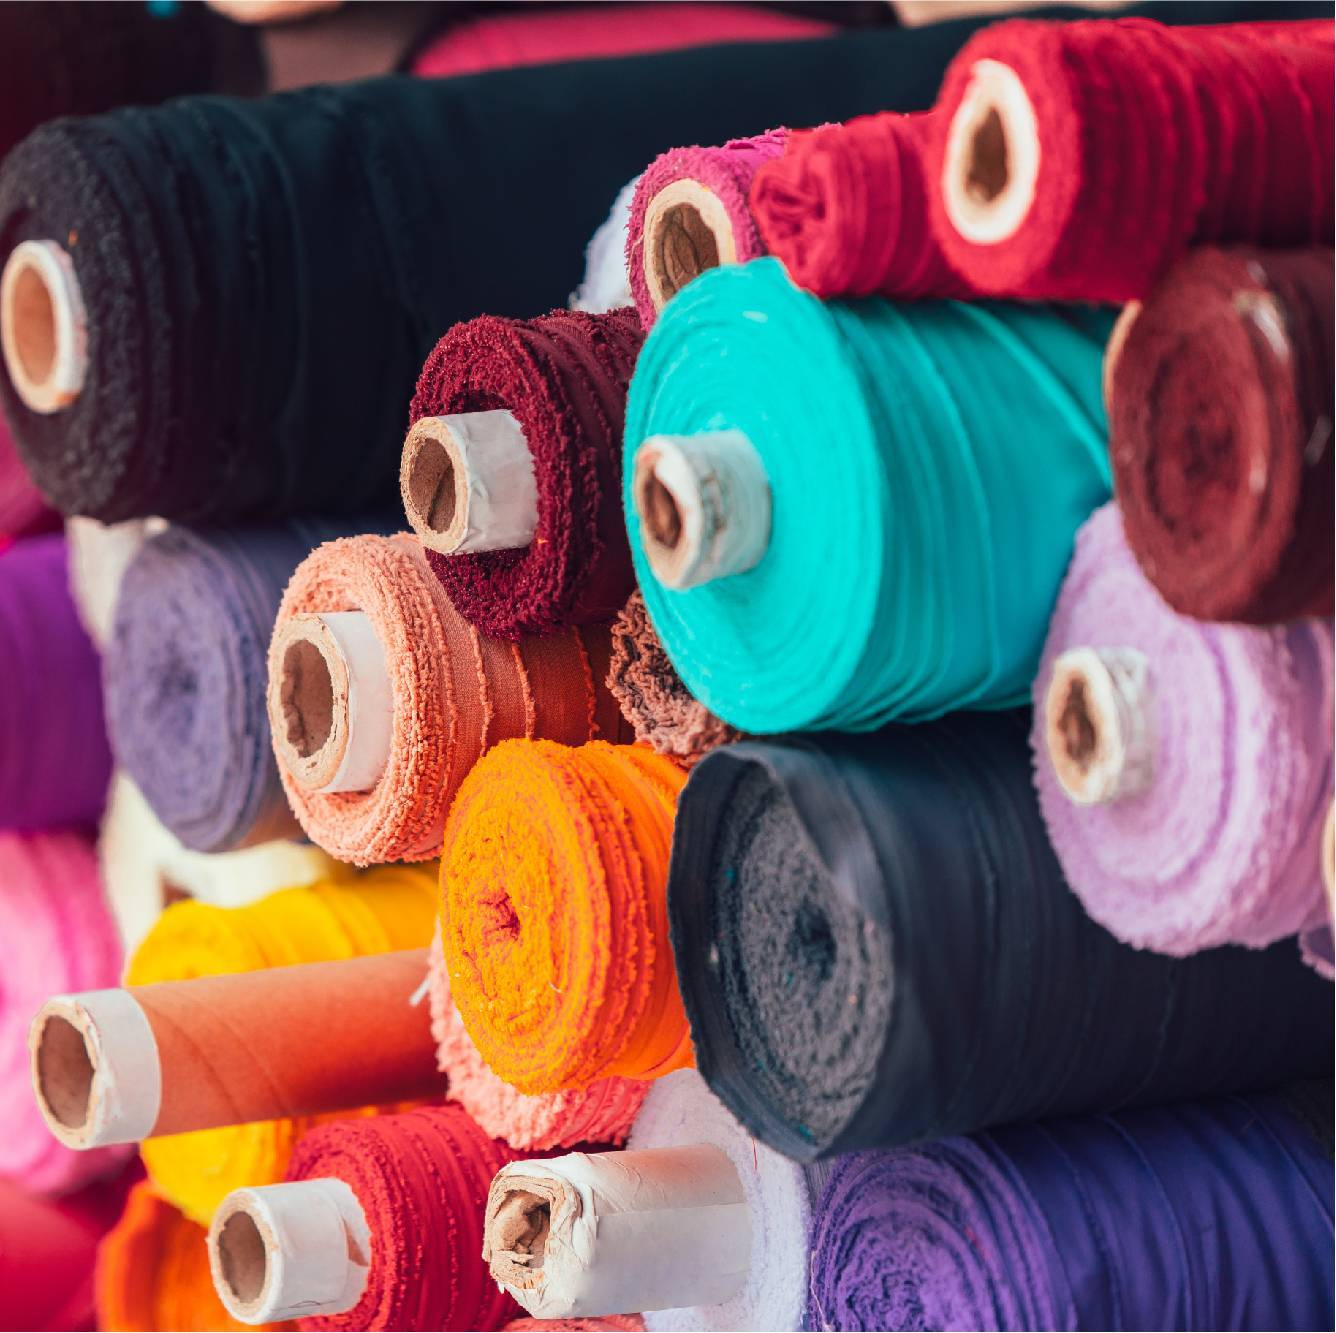 Rolls of colourful fabric in a pile